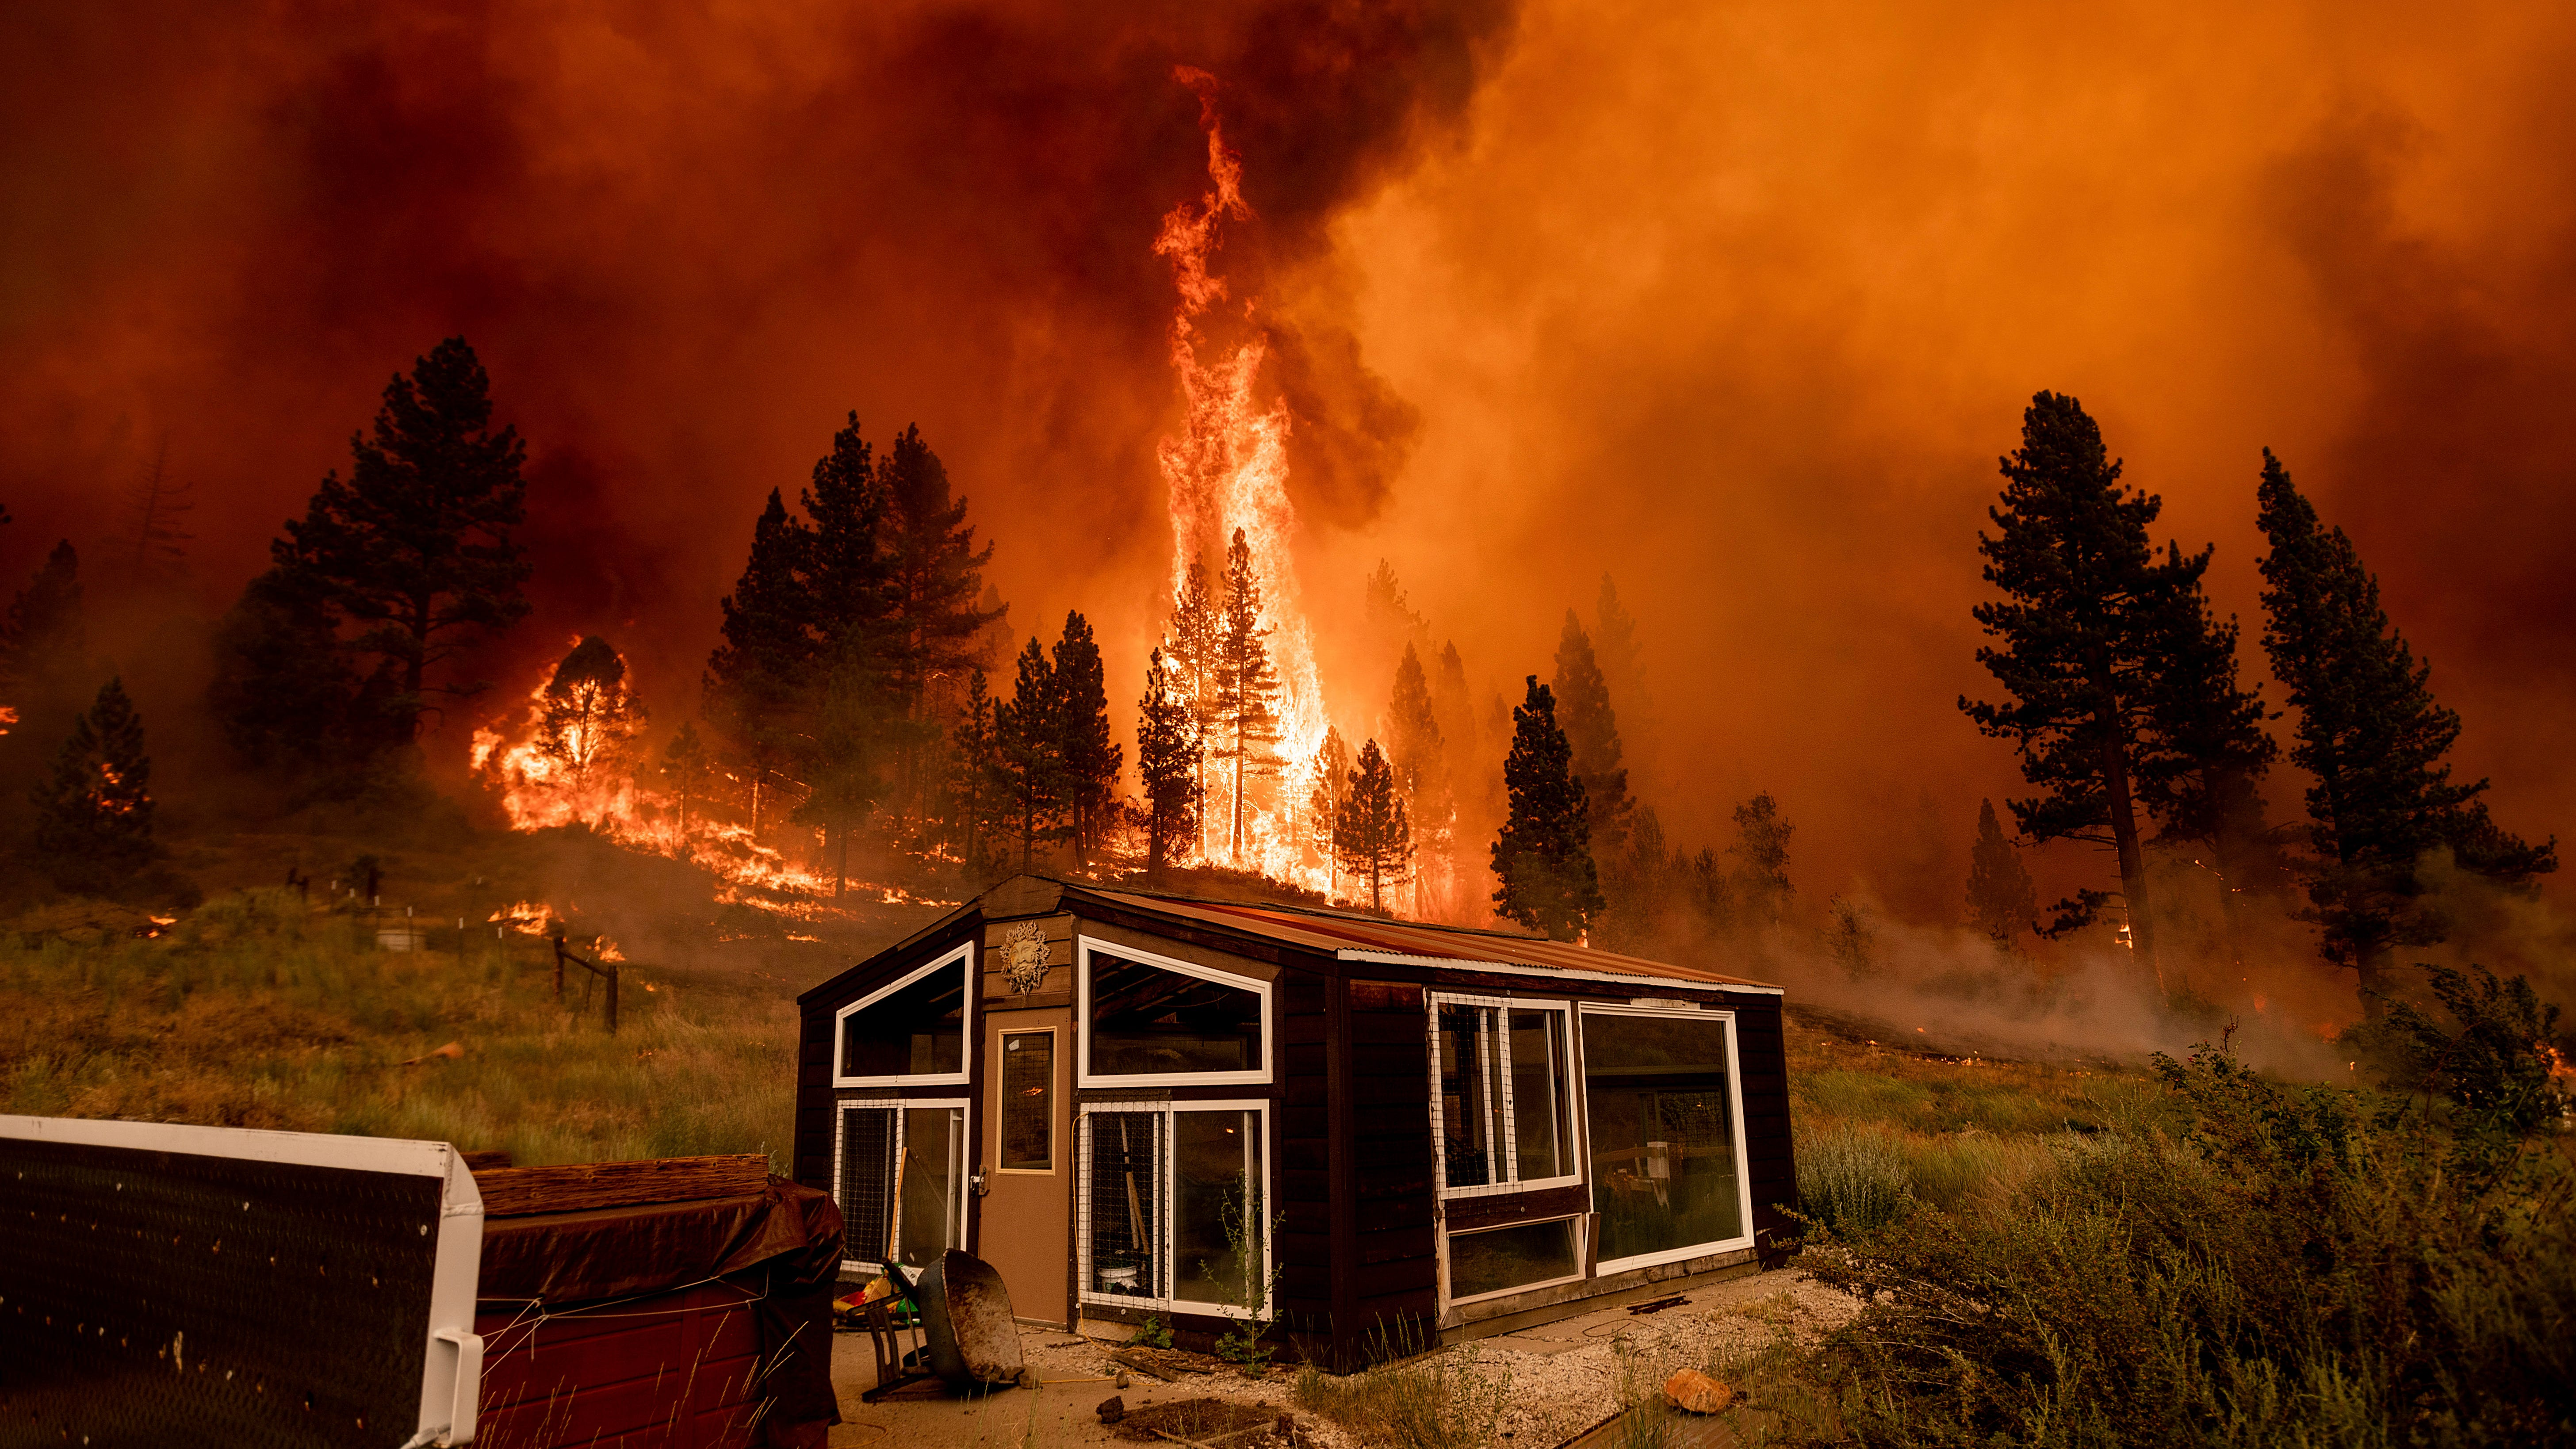 The Tamarack Fire burns behind a greenhouse in the Markleeville community of Alpine County, Calif., on Saturday, July 17, 2021.